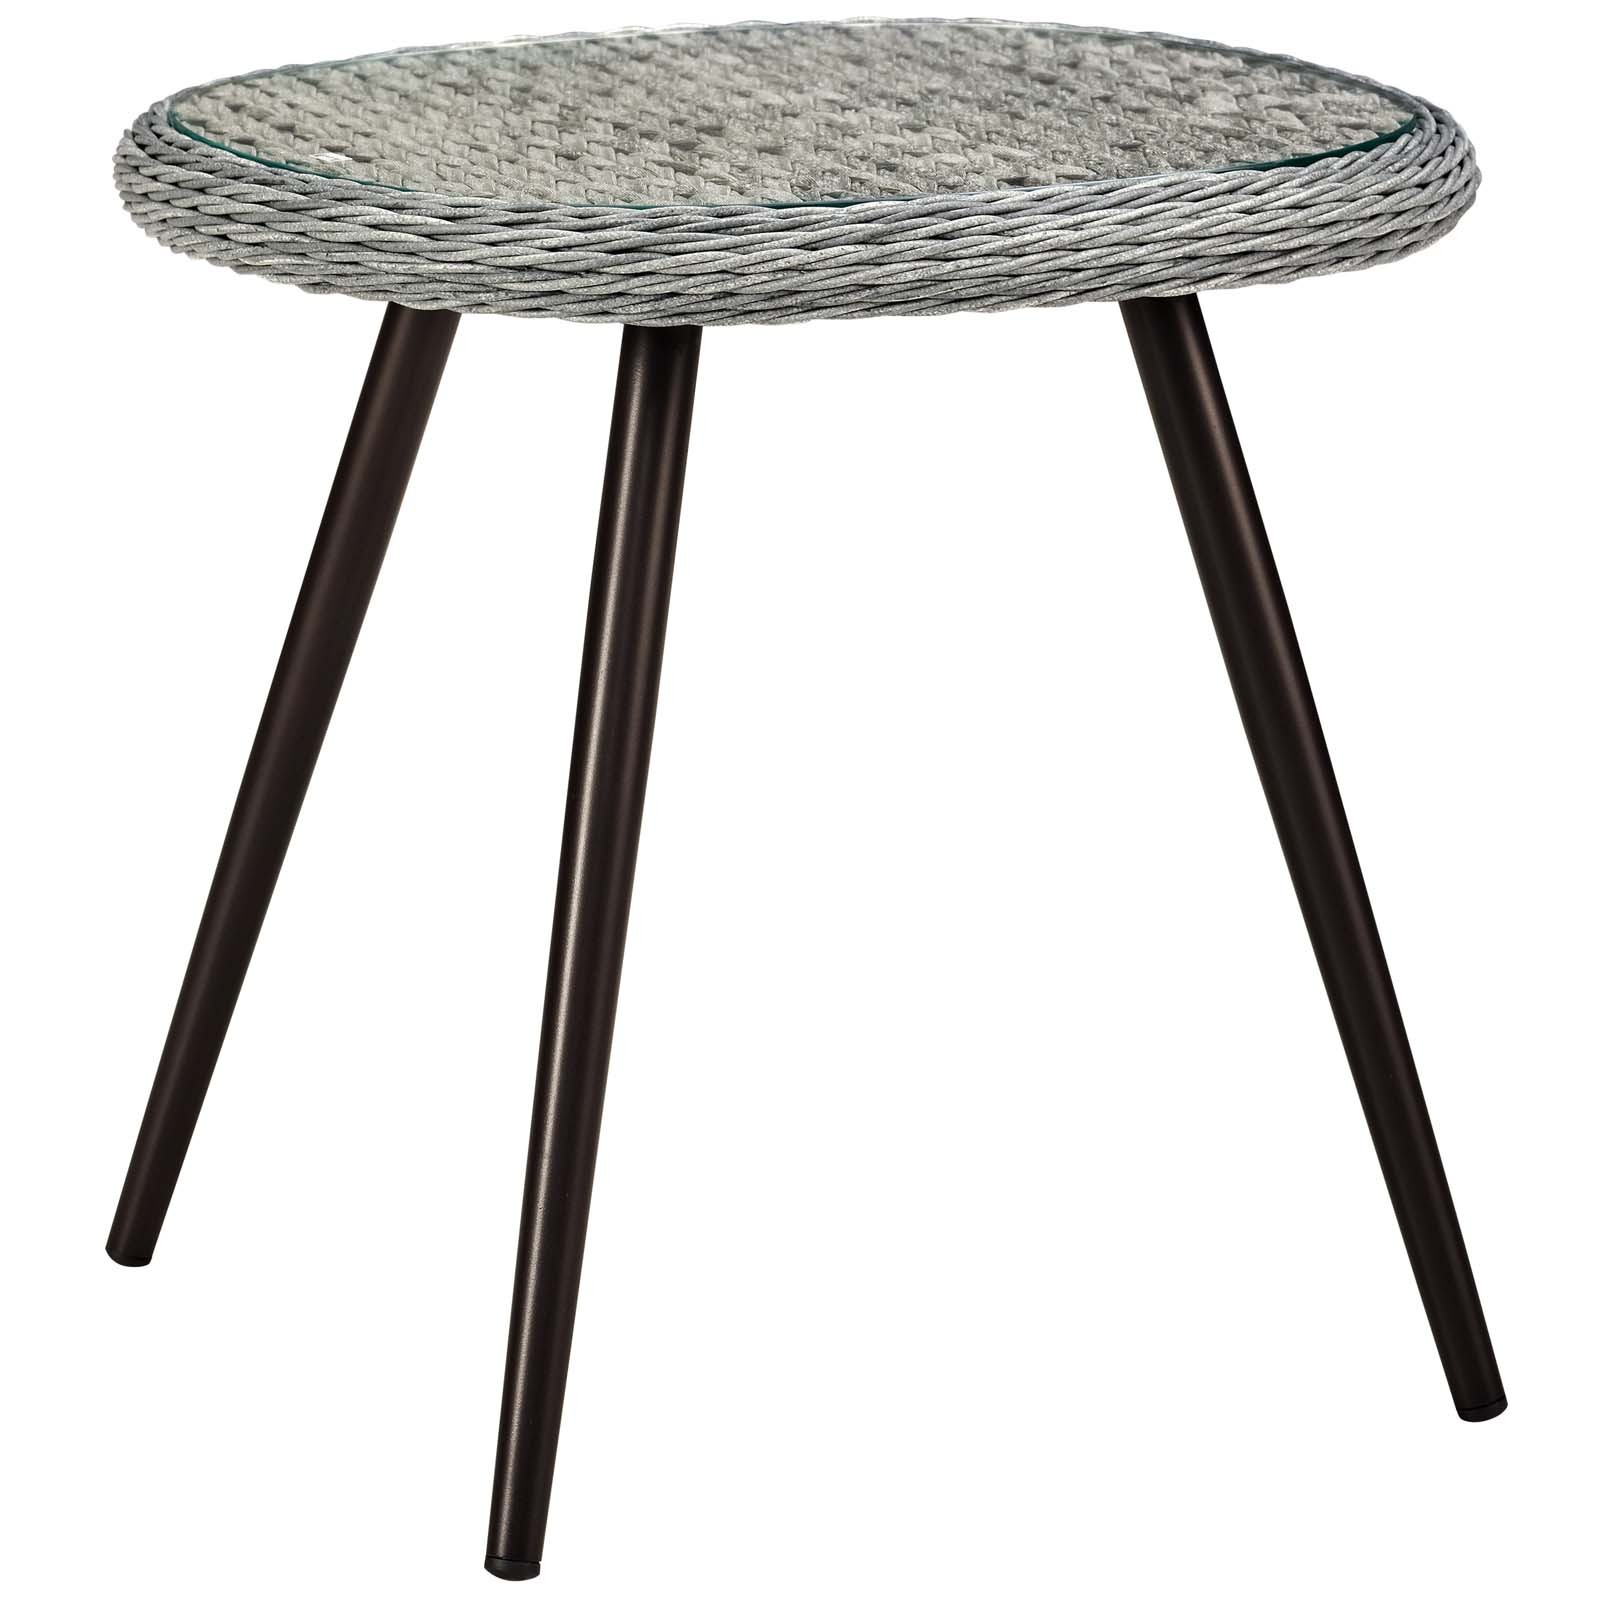 Endeavor Outdoor Patio Wicker Rattan Side Table in Gray